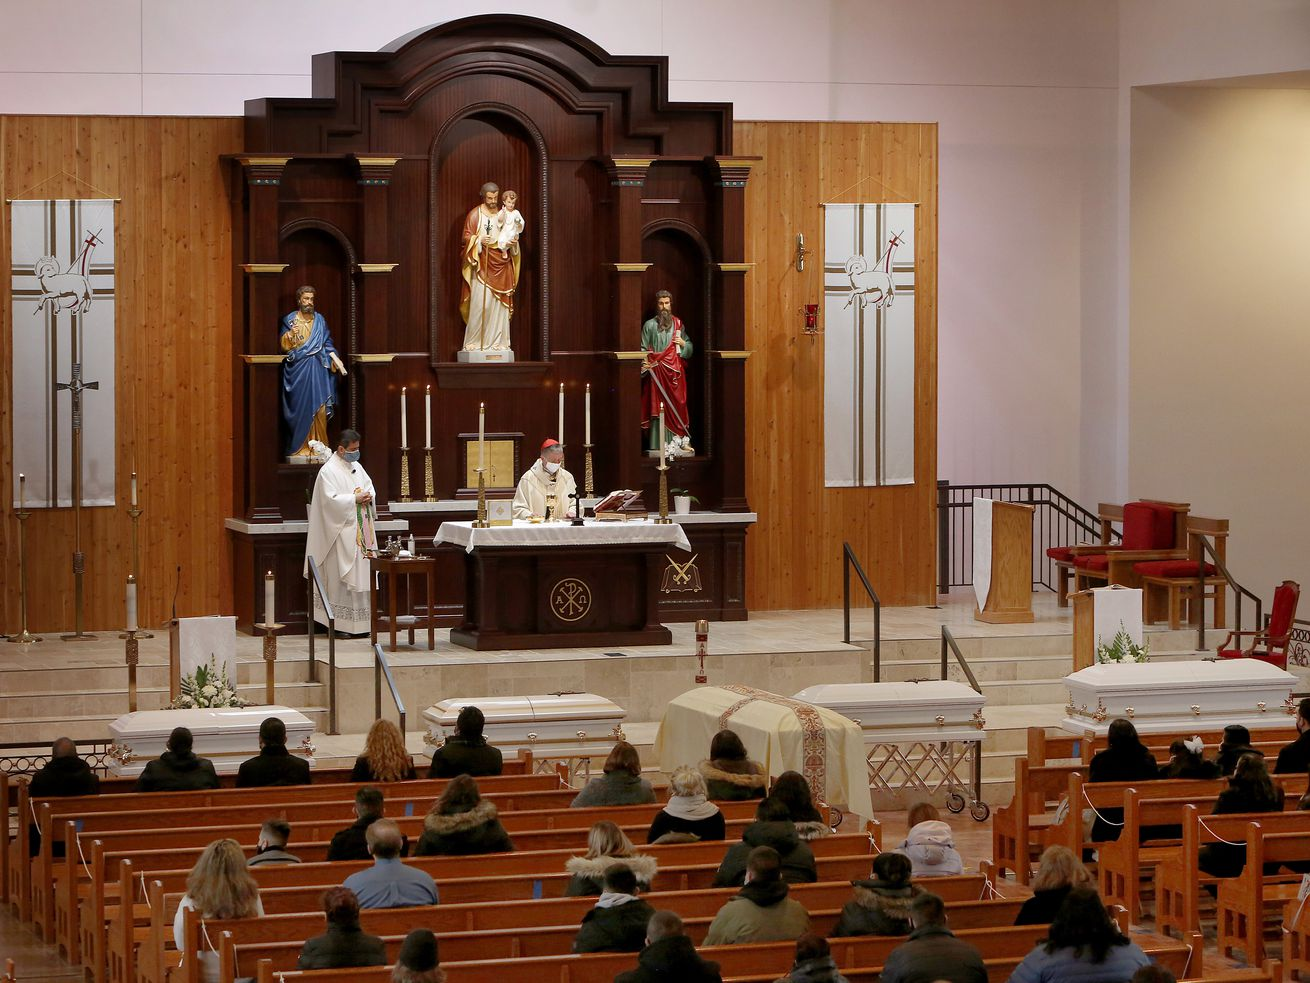 Cardinal Blase Cupich and the Rev. Esequiel Sanchez presided over the funeral Mass of five members of the Espinosa family Wednesday at the Shrine of Our Lady of Guadalupe in Des Plaines.